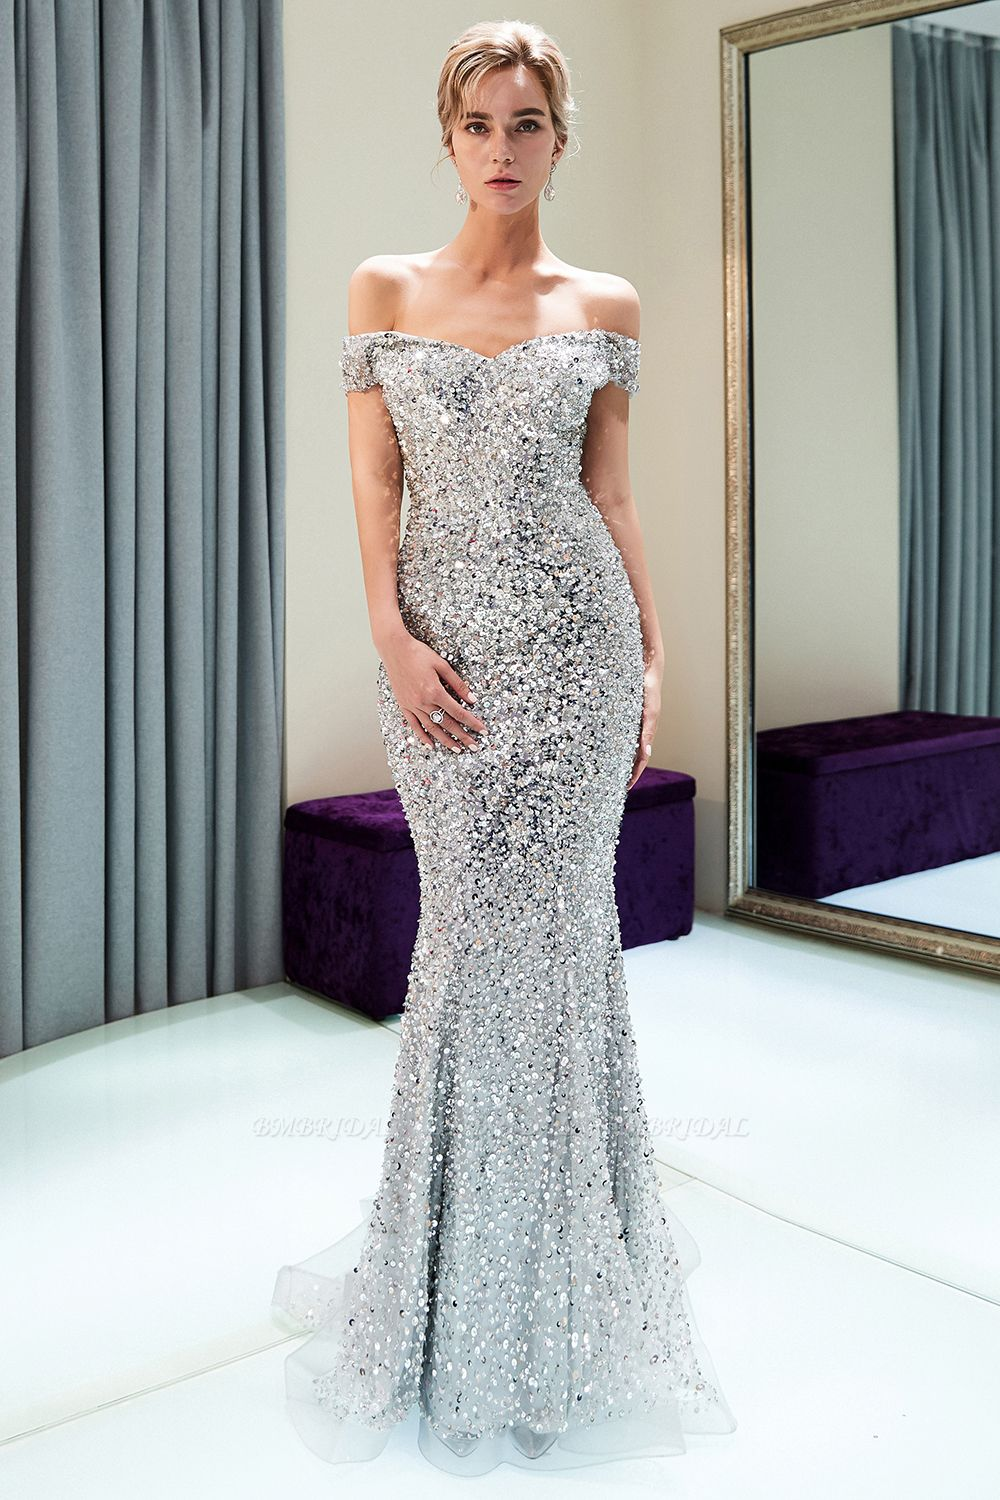 BMbridal Affrodable Mermaid Off-the-shoulder Prom Dresses Long Sequins Silver Evening Gowns Online